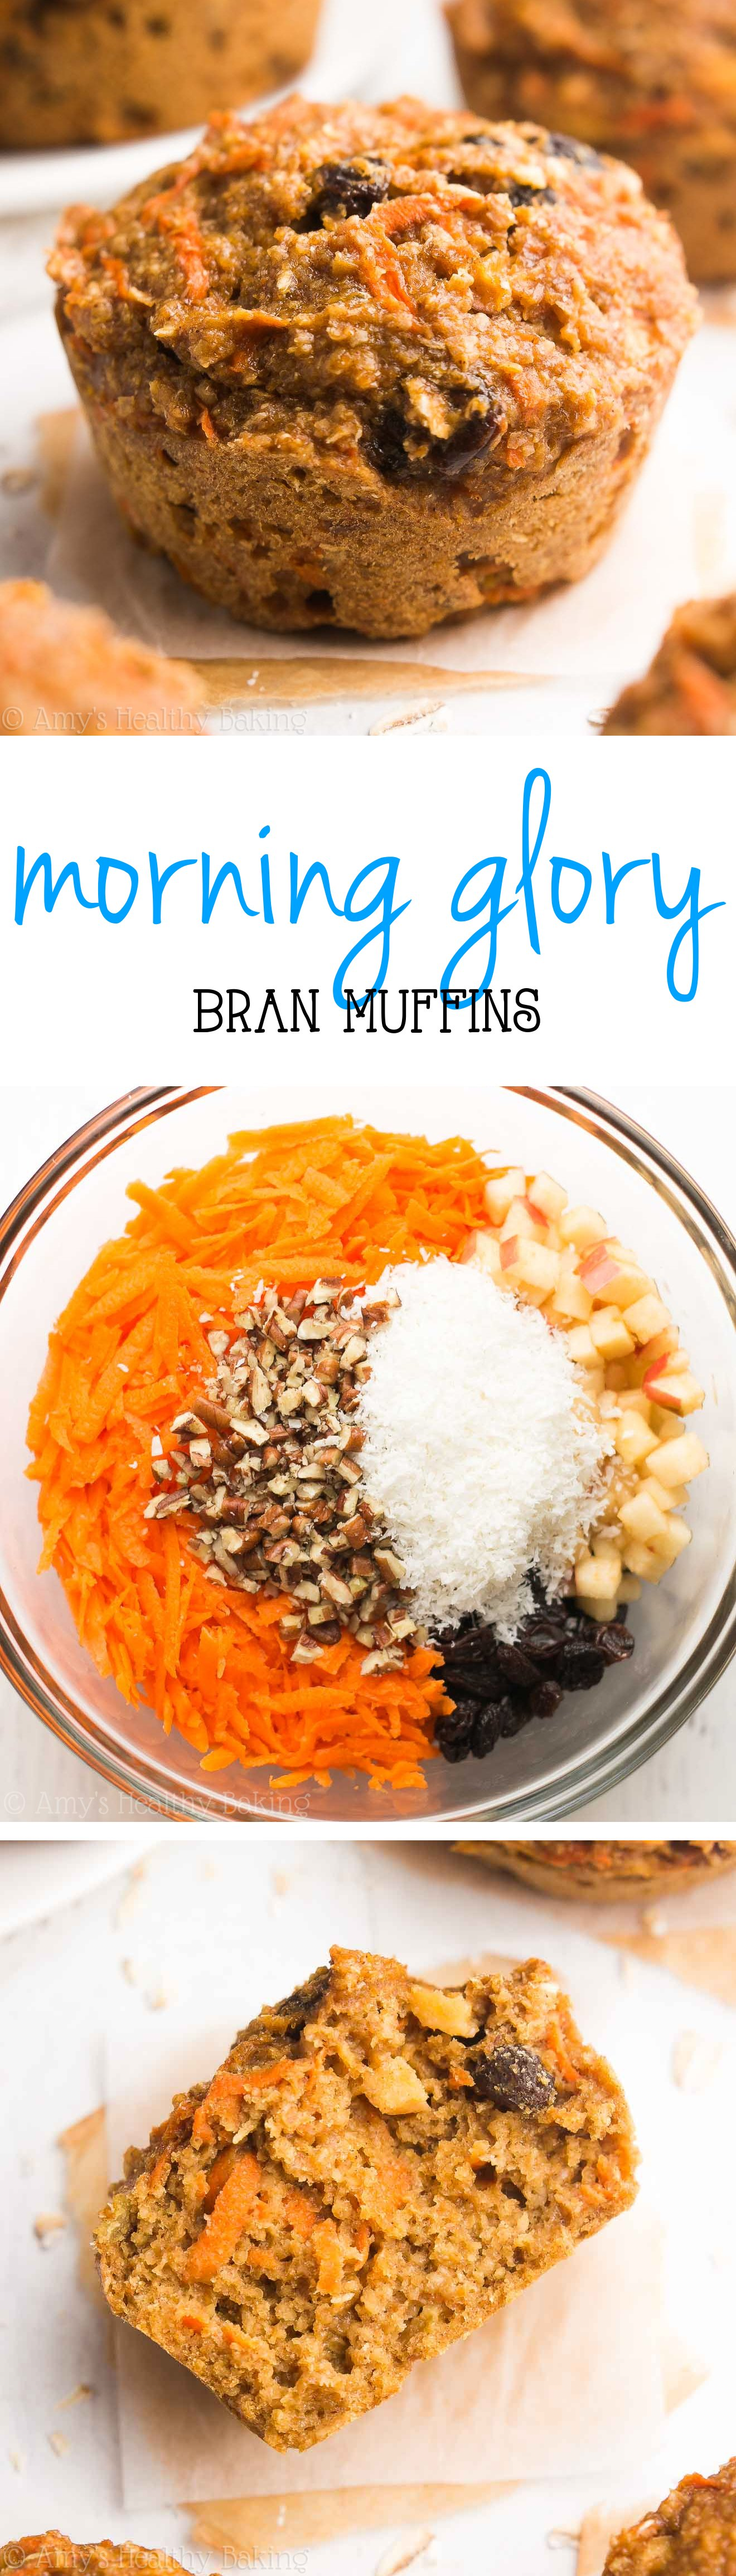 Morning Glory Bran Muffins -- so easy & healthy! The perfect guilt-free, delicious breakfast!